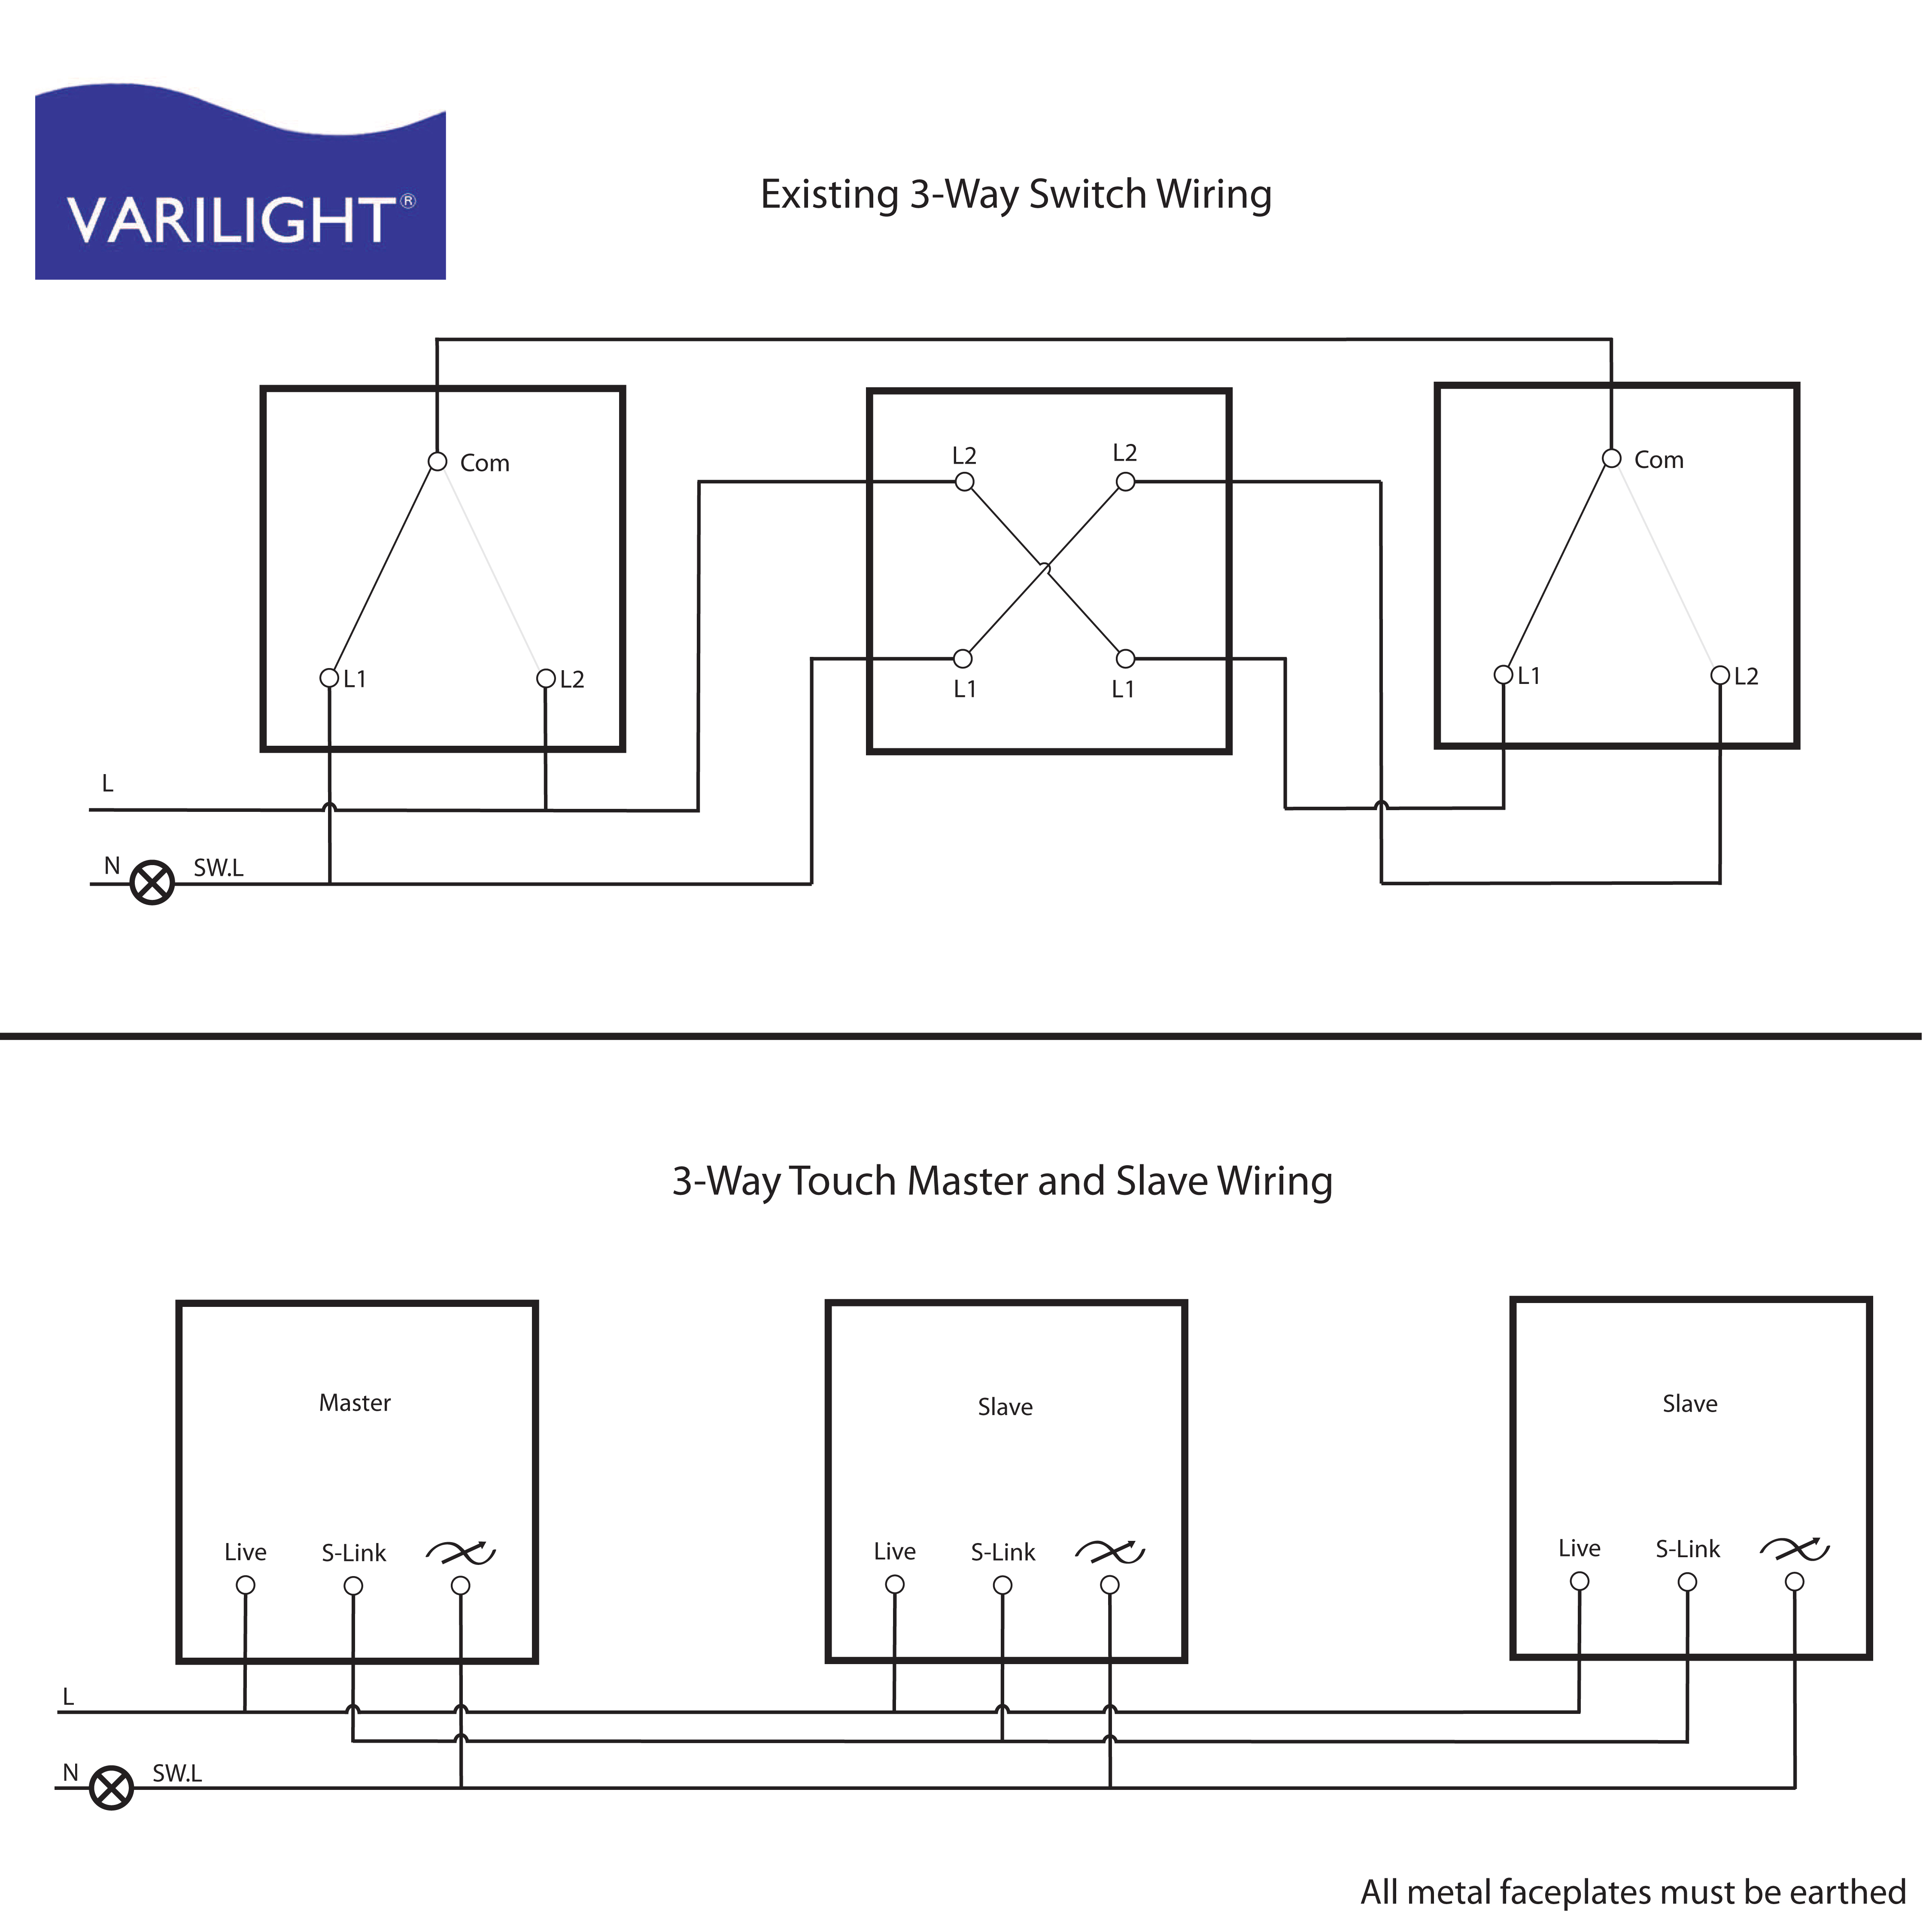 Varilight Wiring Diagrams - 3 Way Switch Wiring Diagram